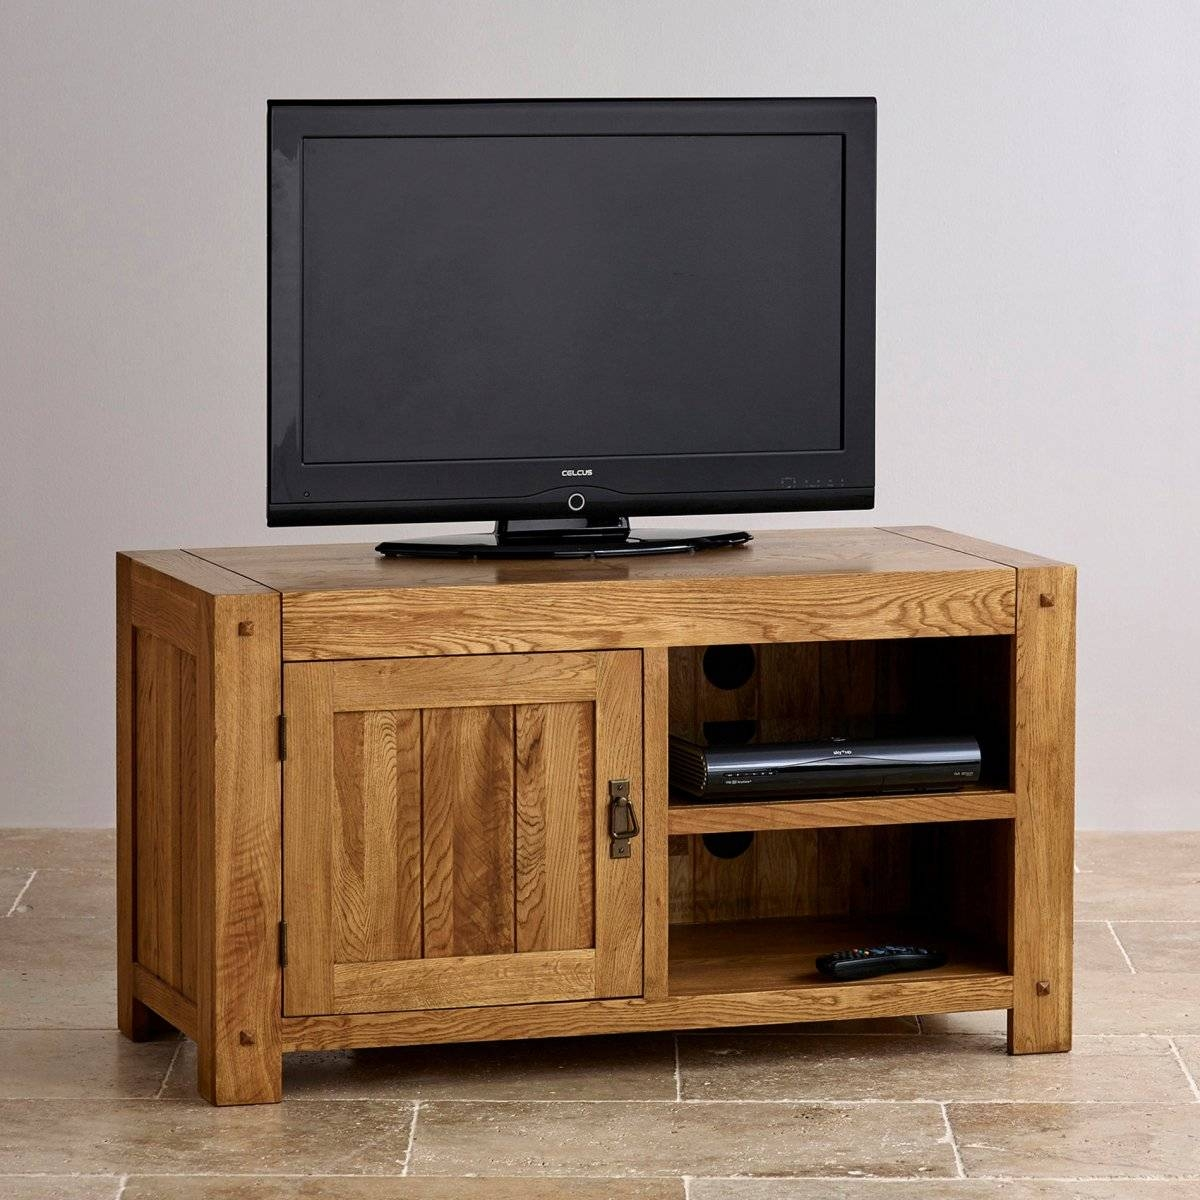 Quercus Tv Cabinet In Rustic Solid Oak | Oak Furniture Land With Regard To Oak Tv Cabinets (View 8 of 15)